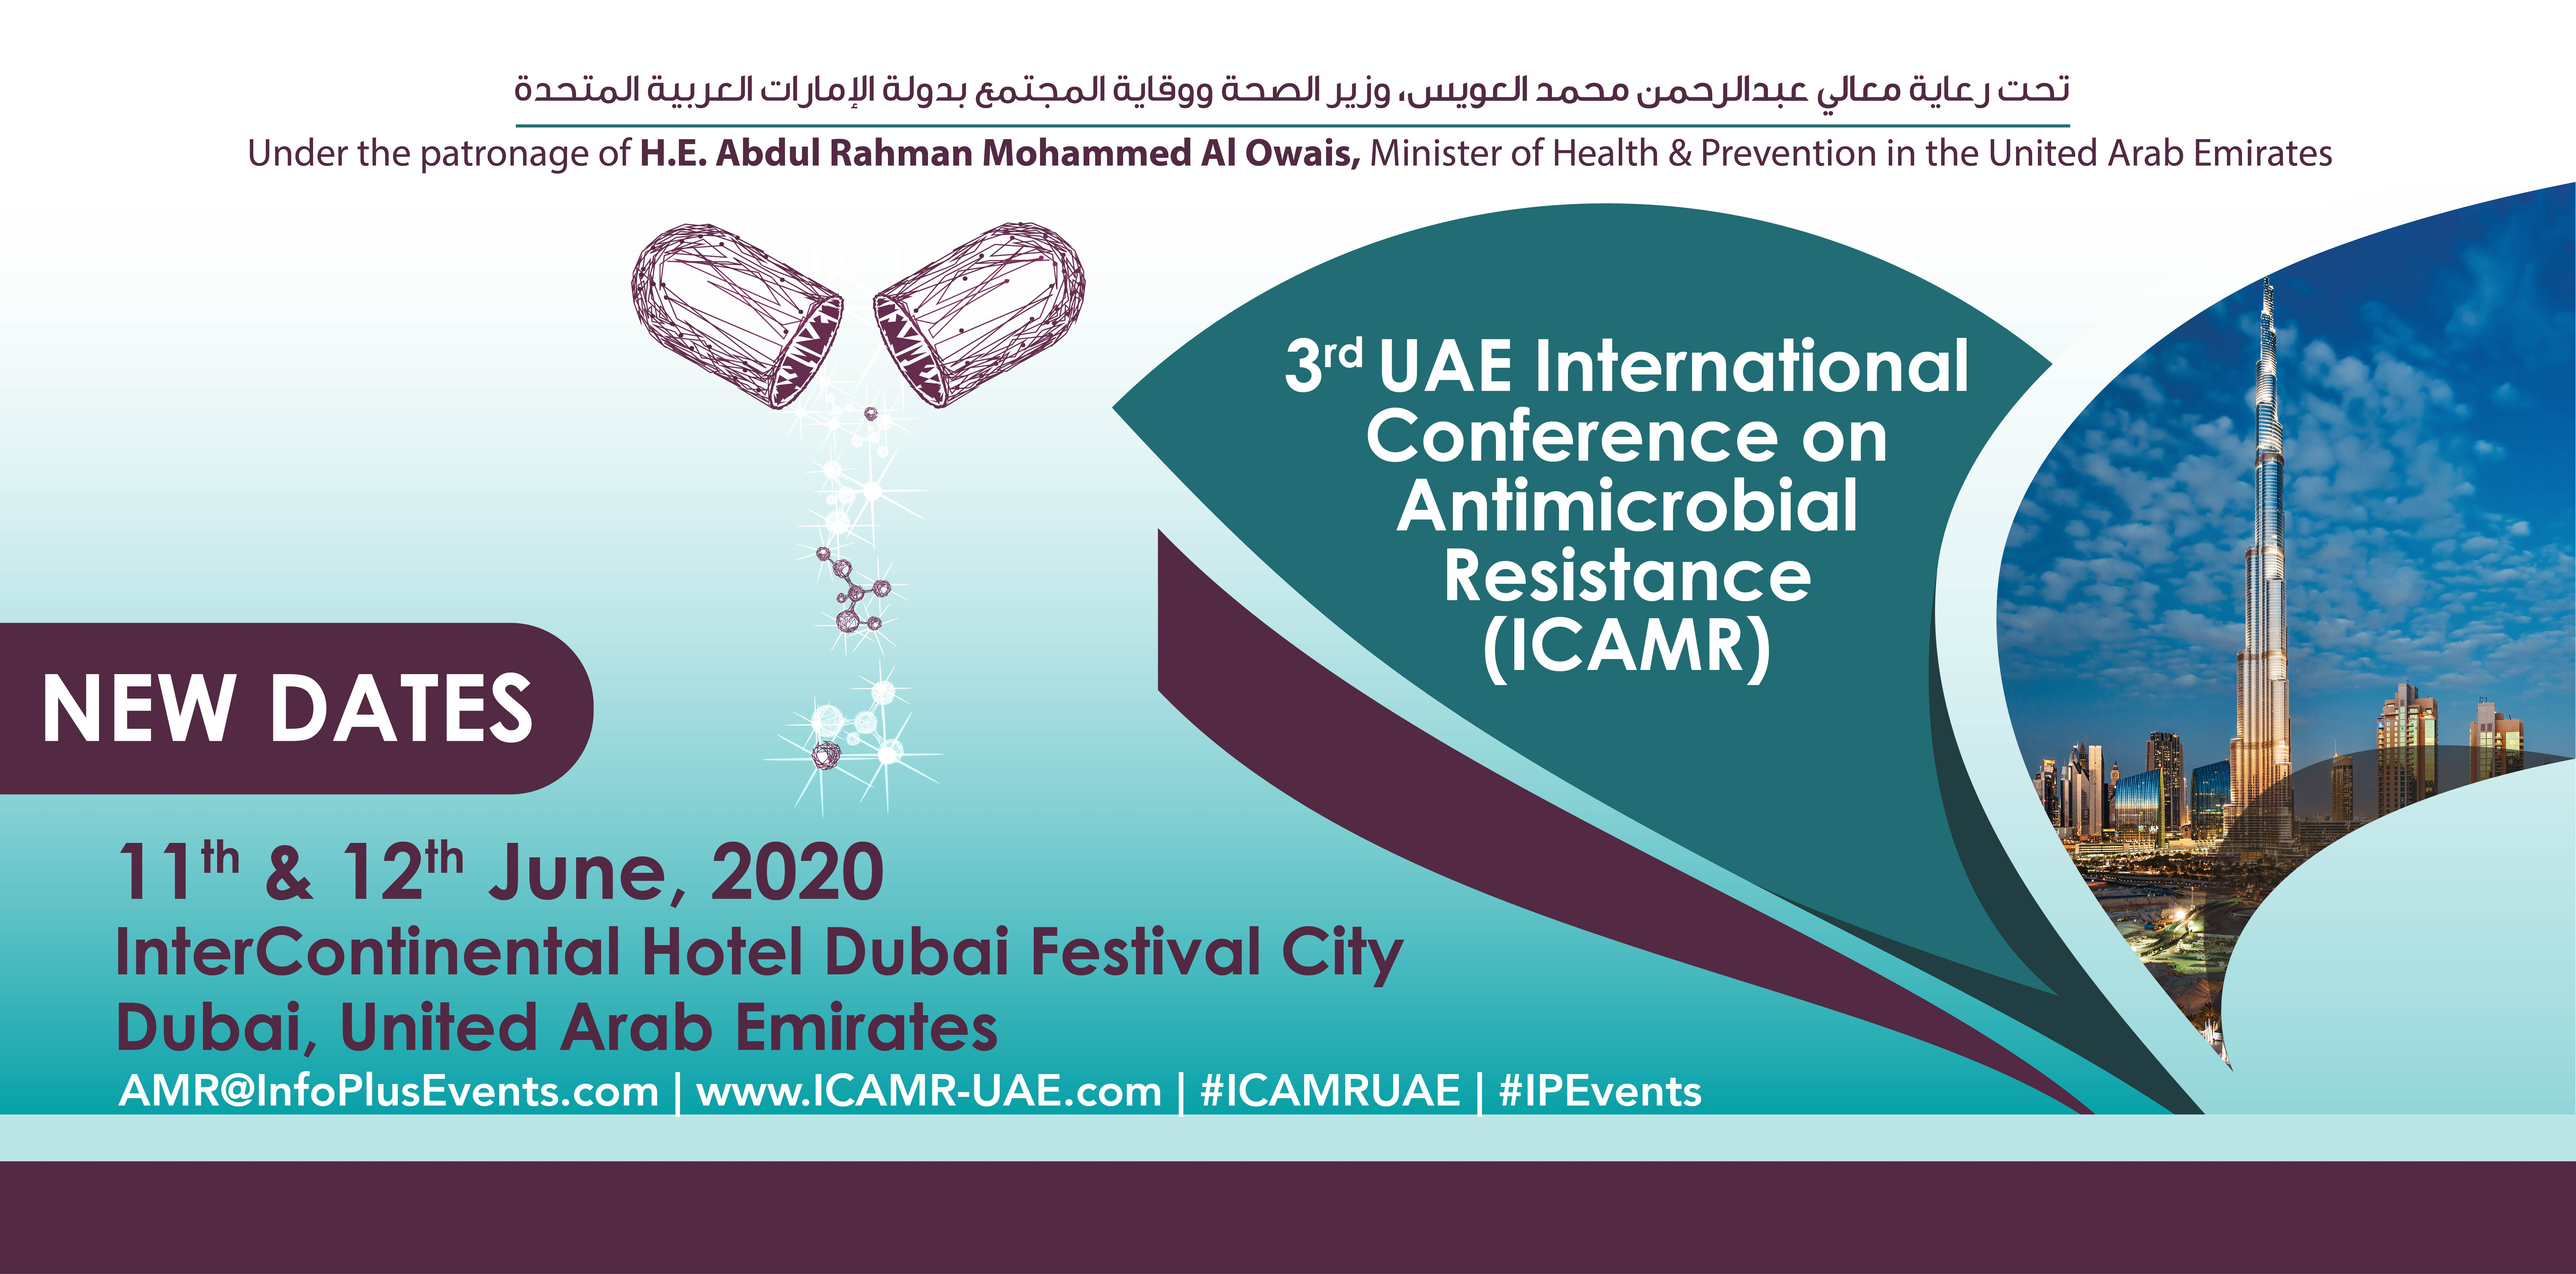 3rd UAE International Conference on Antimicrobial Resistance (ICAMR) 11th & 12th June,2020